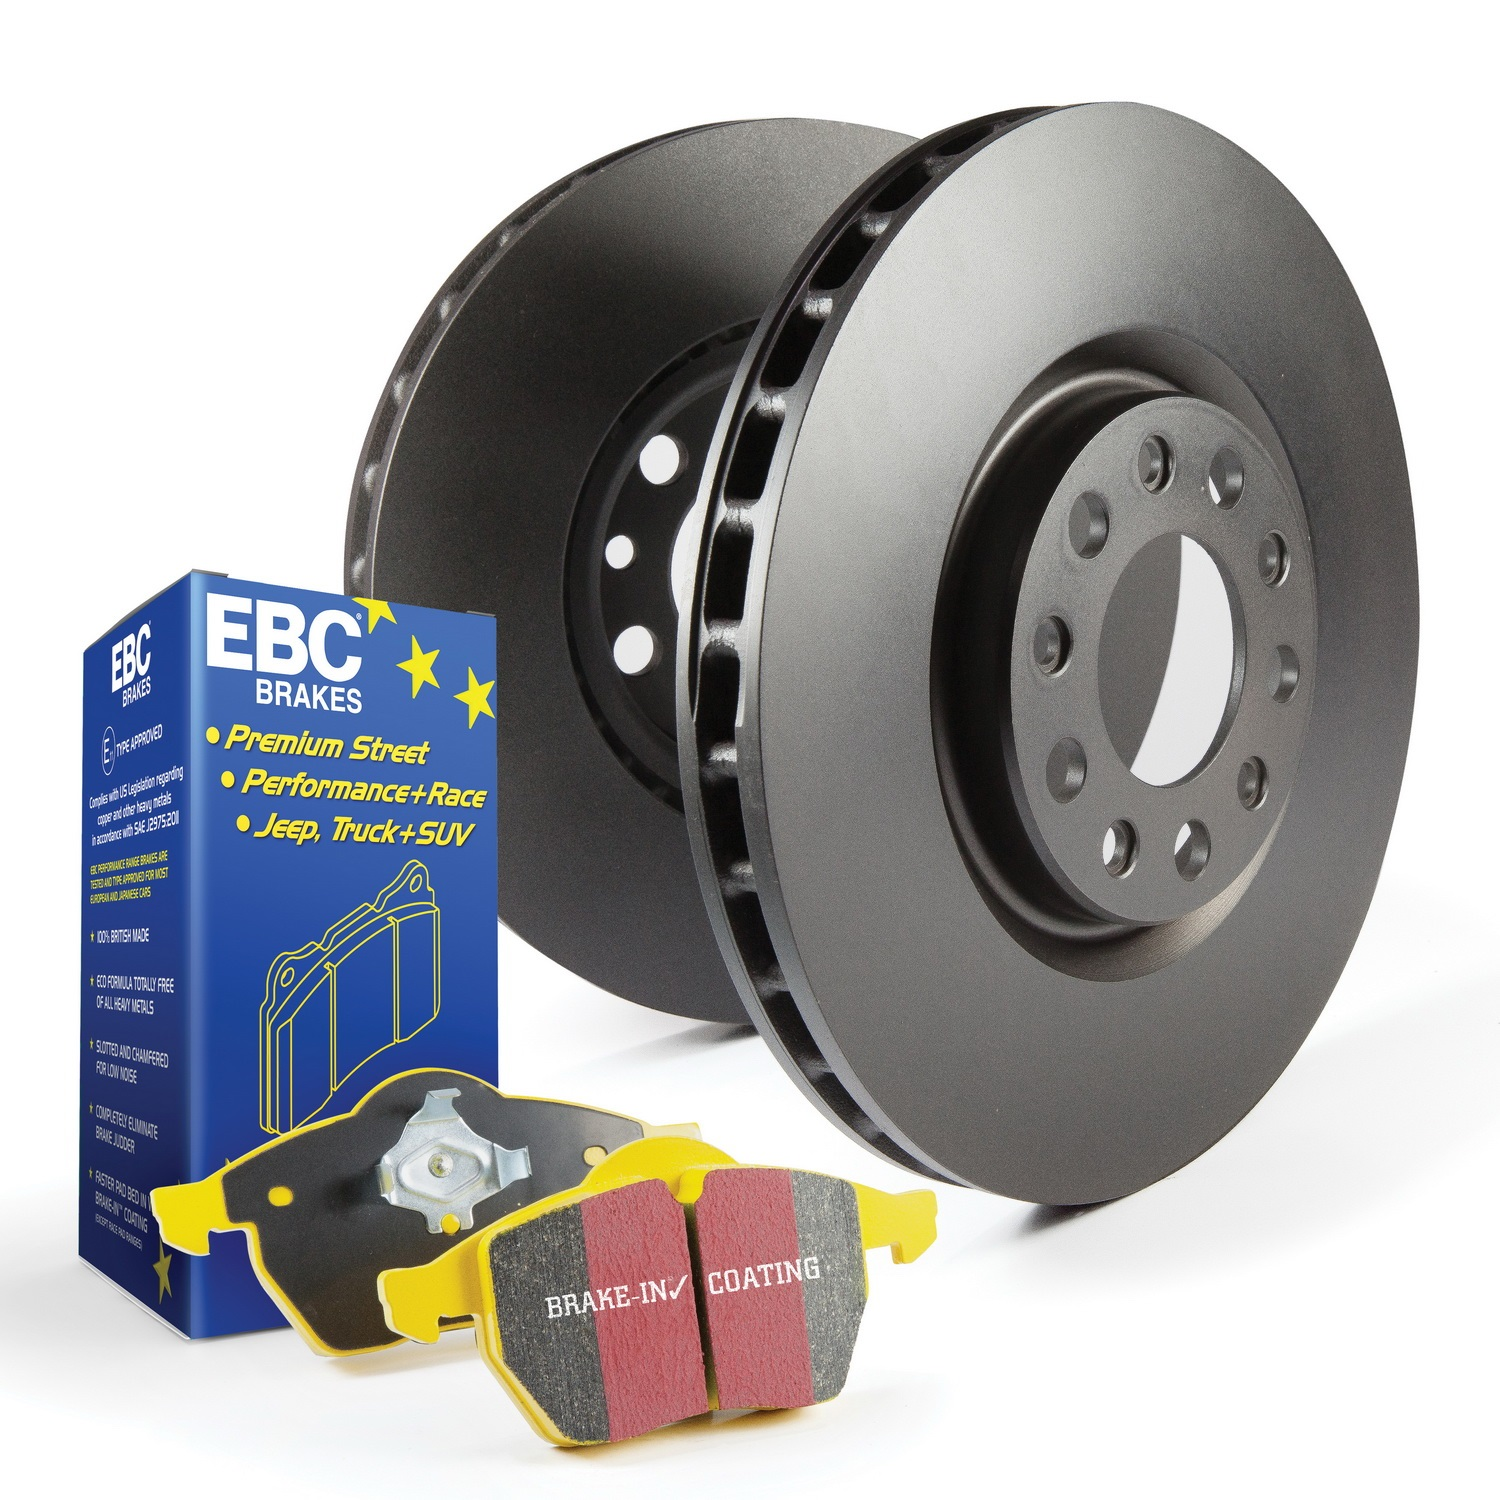 EBC Brakes S13KR1439 - Disc Brake Pad and Rotor Kit